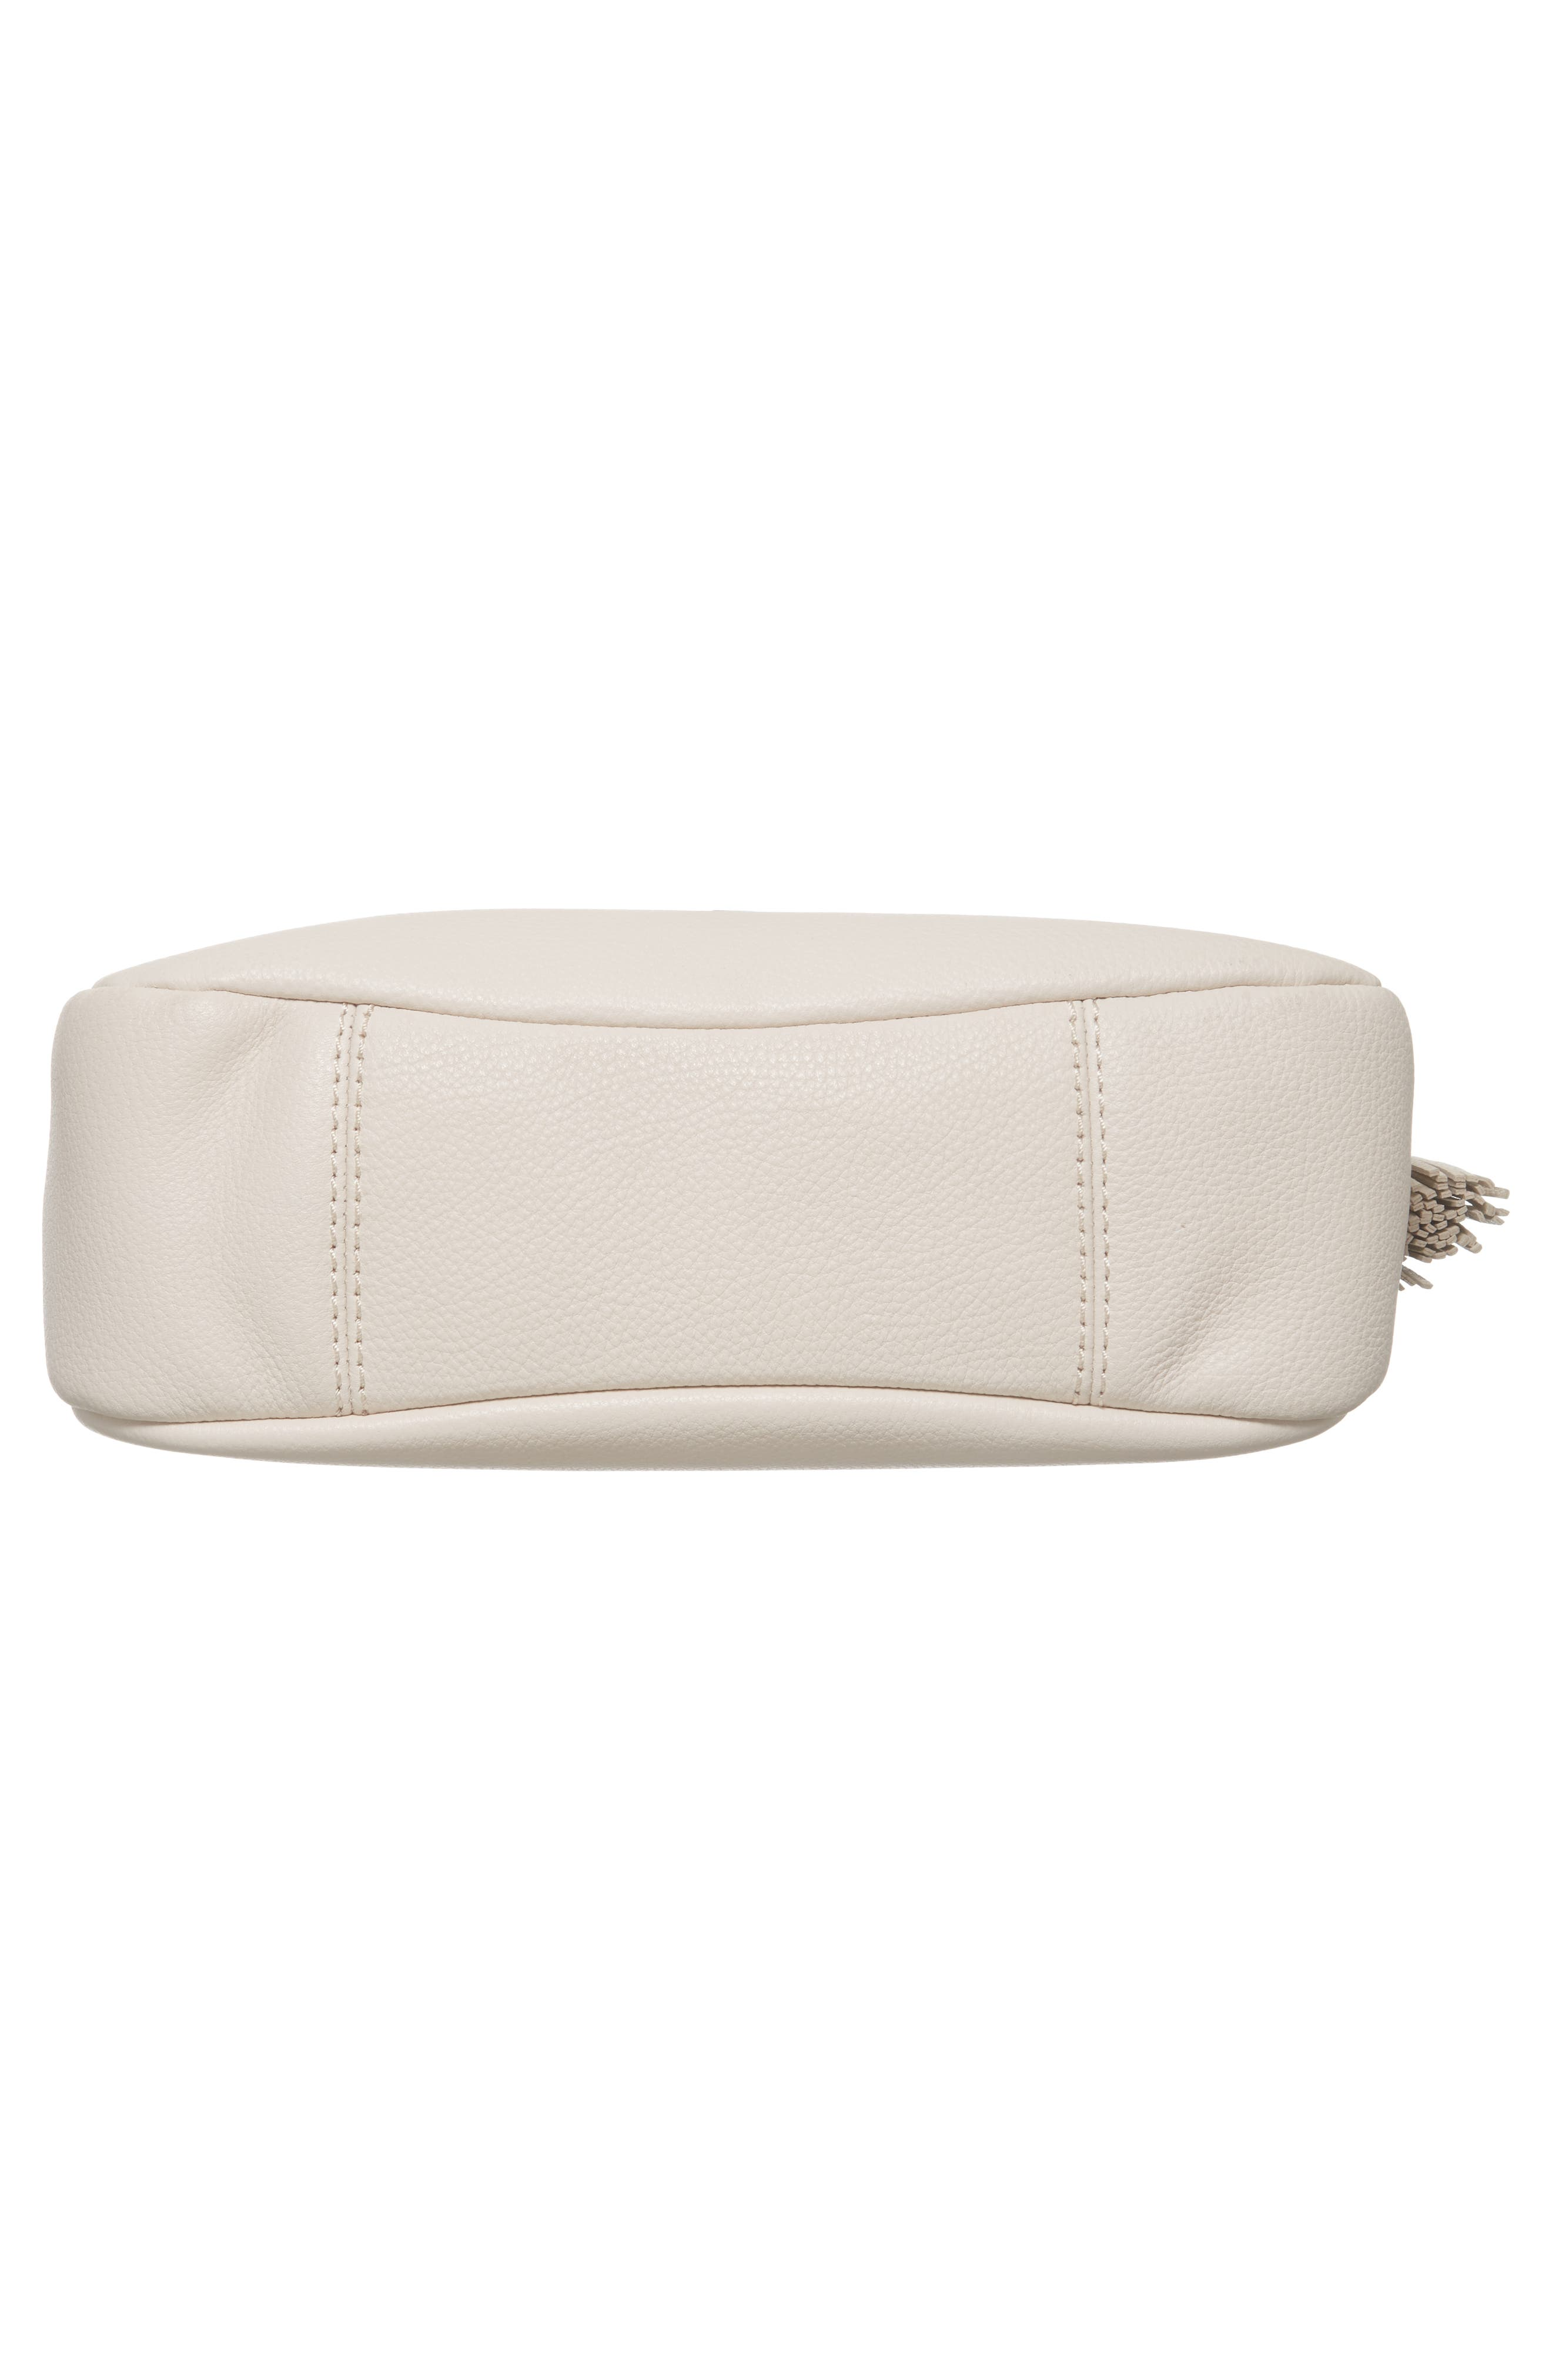 kingston drive - shannon leather shoulder bag,                             Alternate thumbnail 6, color,                             Bleach Bone